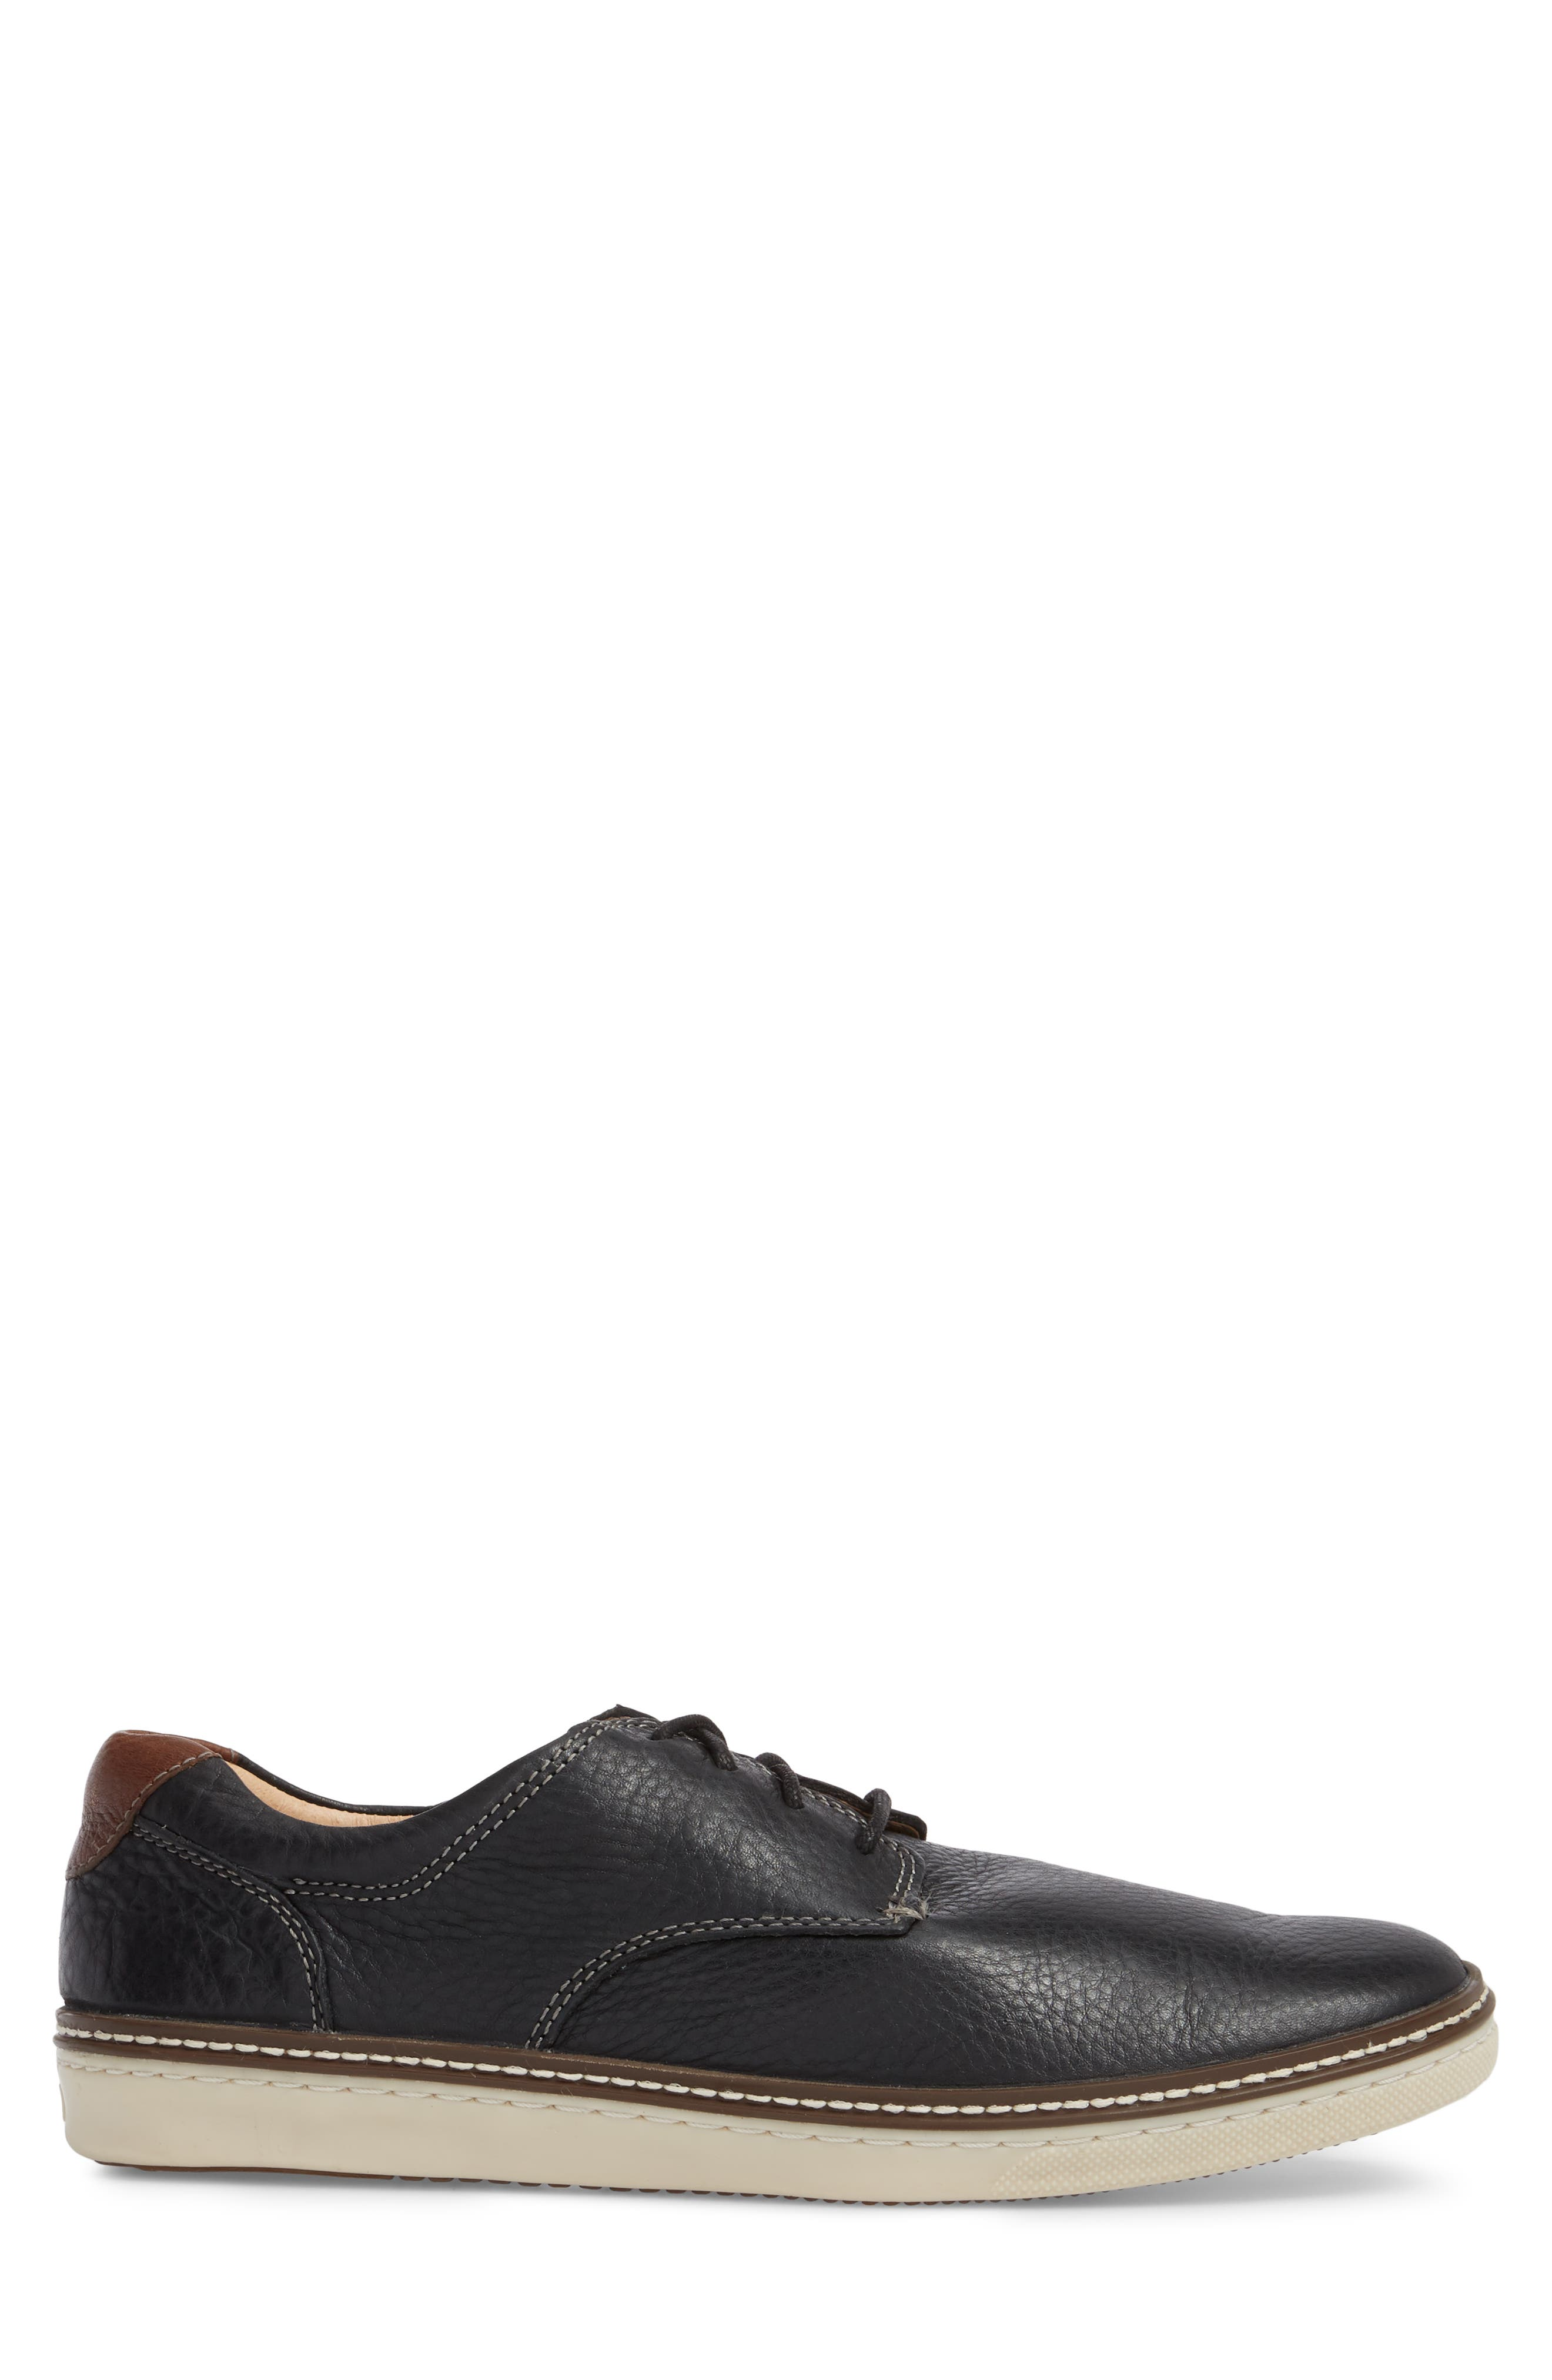 McGuffey Derby Sneaker,                             Alternate thumbnail 3, color,                             Black Leather